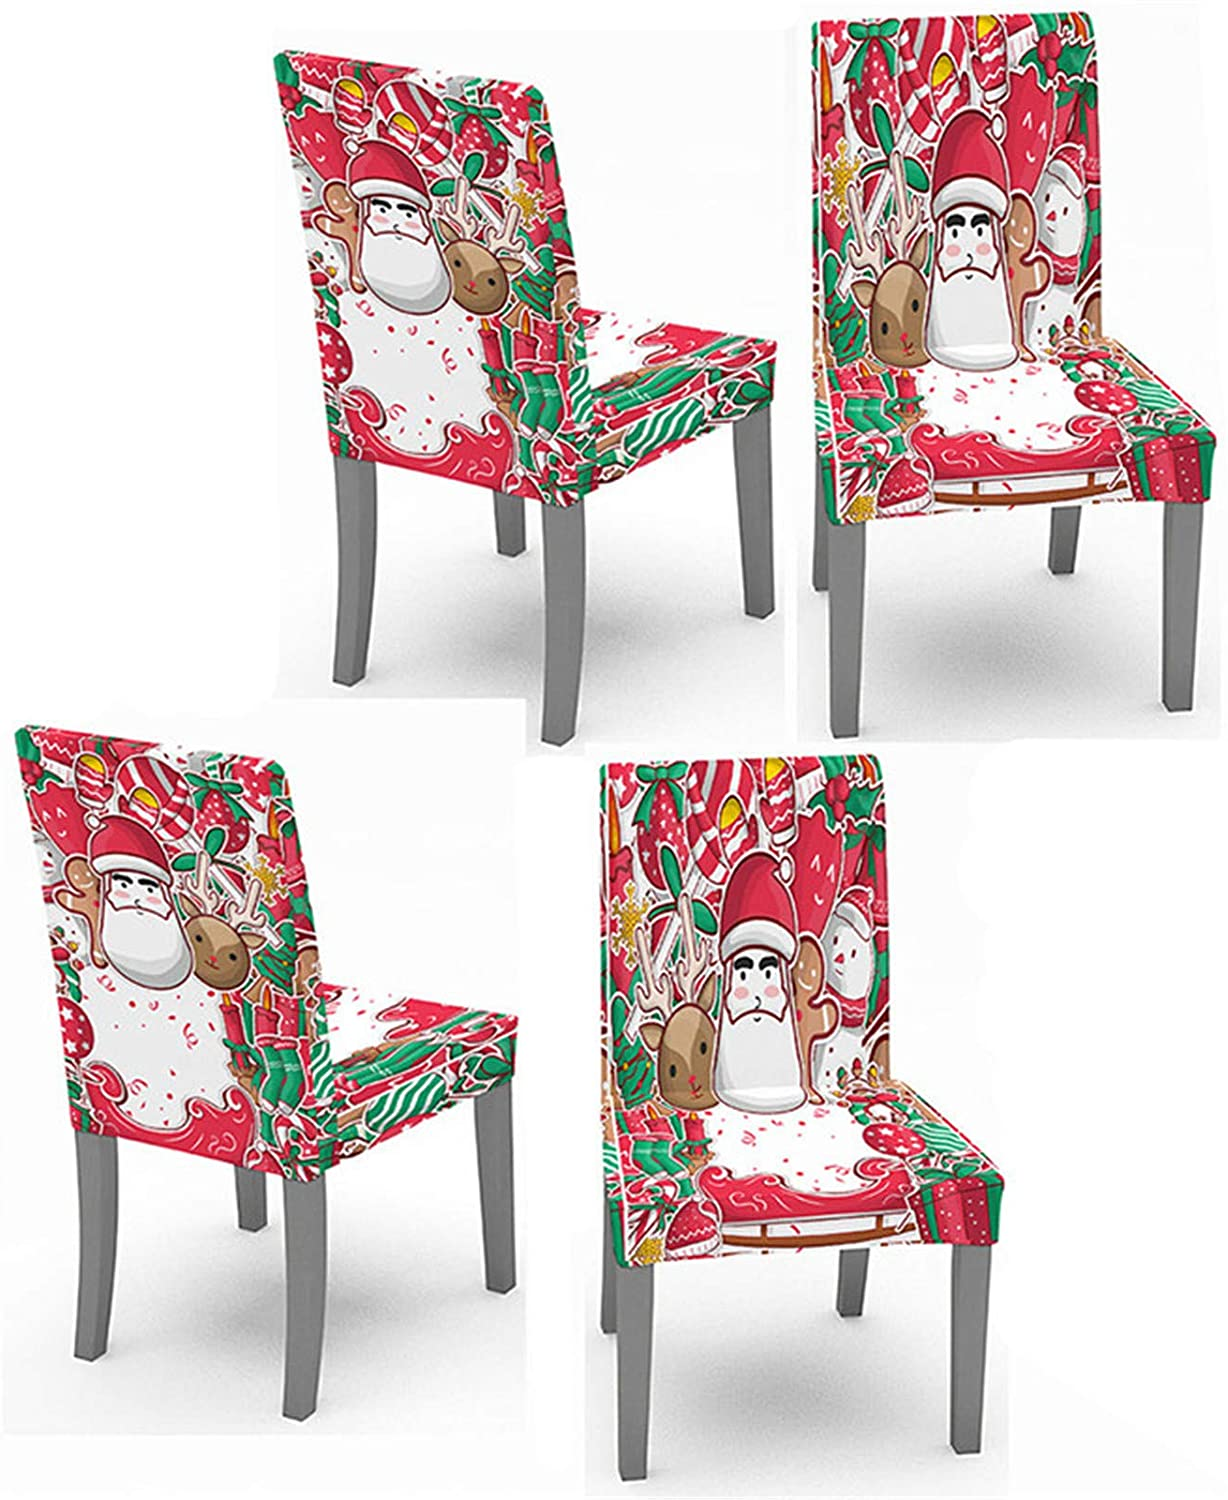 Crafttable 4pcs Stretch Dining Chair Slipcovers, Christmas Printed Chair Cover Seat Slipcover for Kitchen Home Hotel, 04